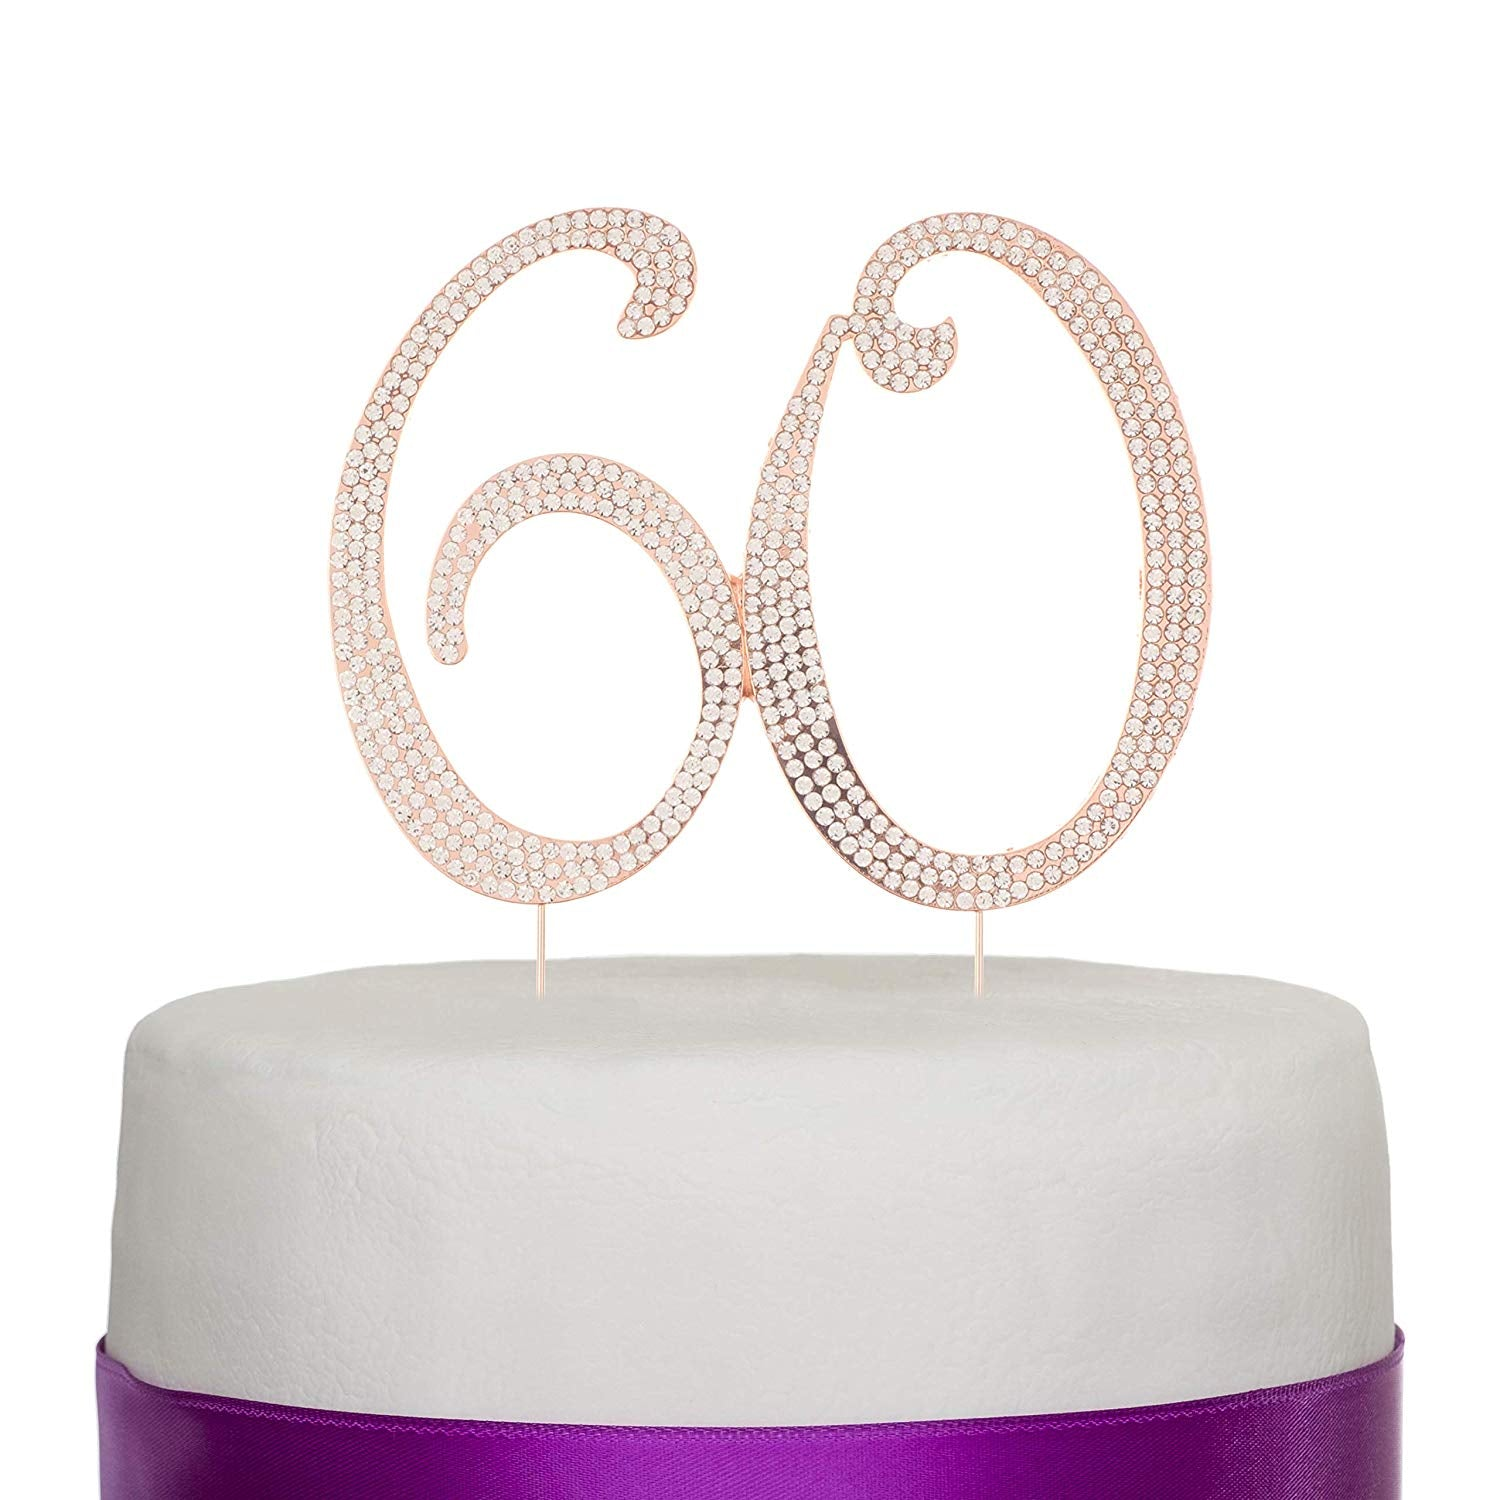 60 Cake Topper - Rose Gold